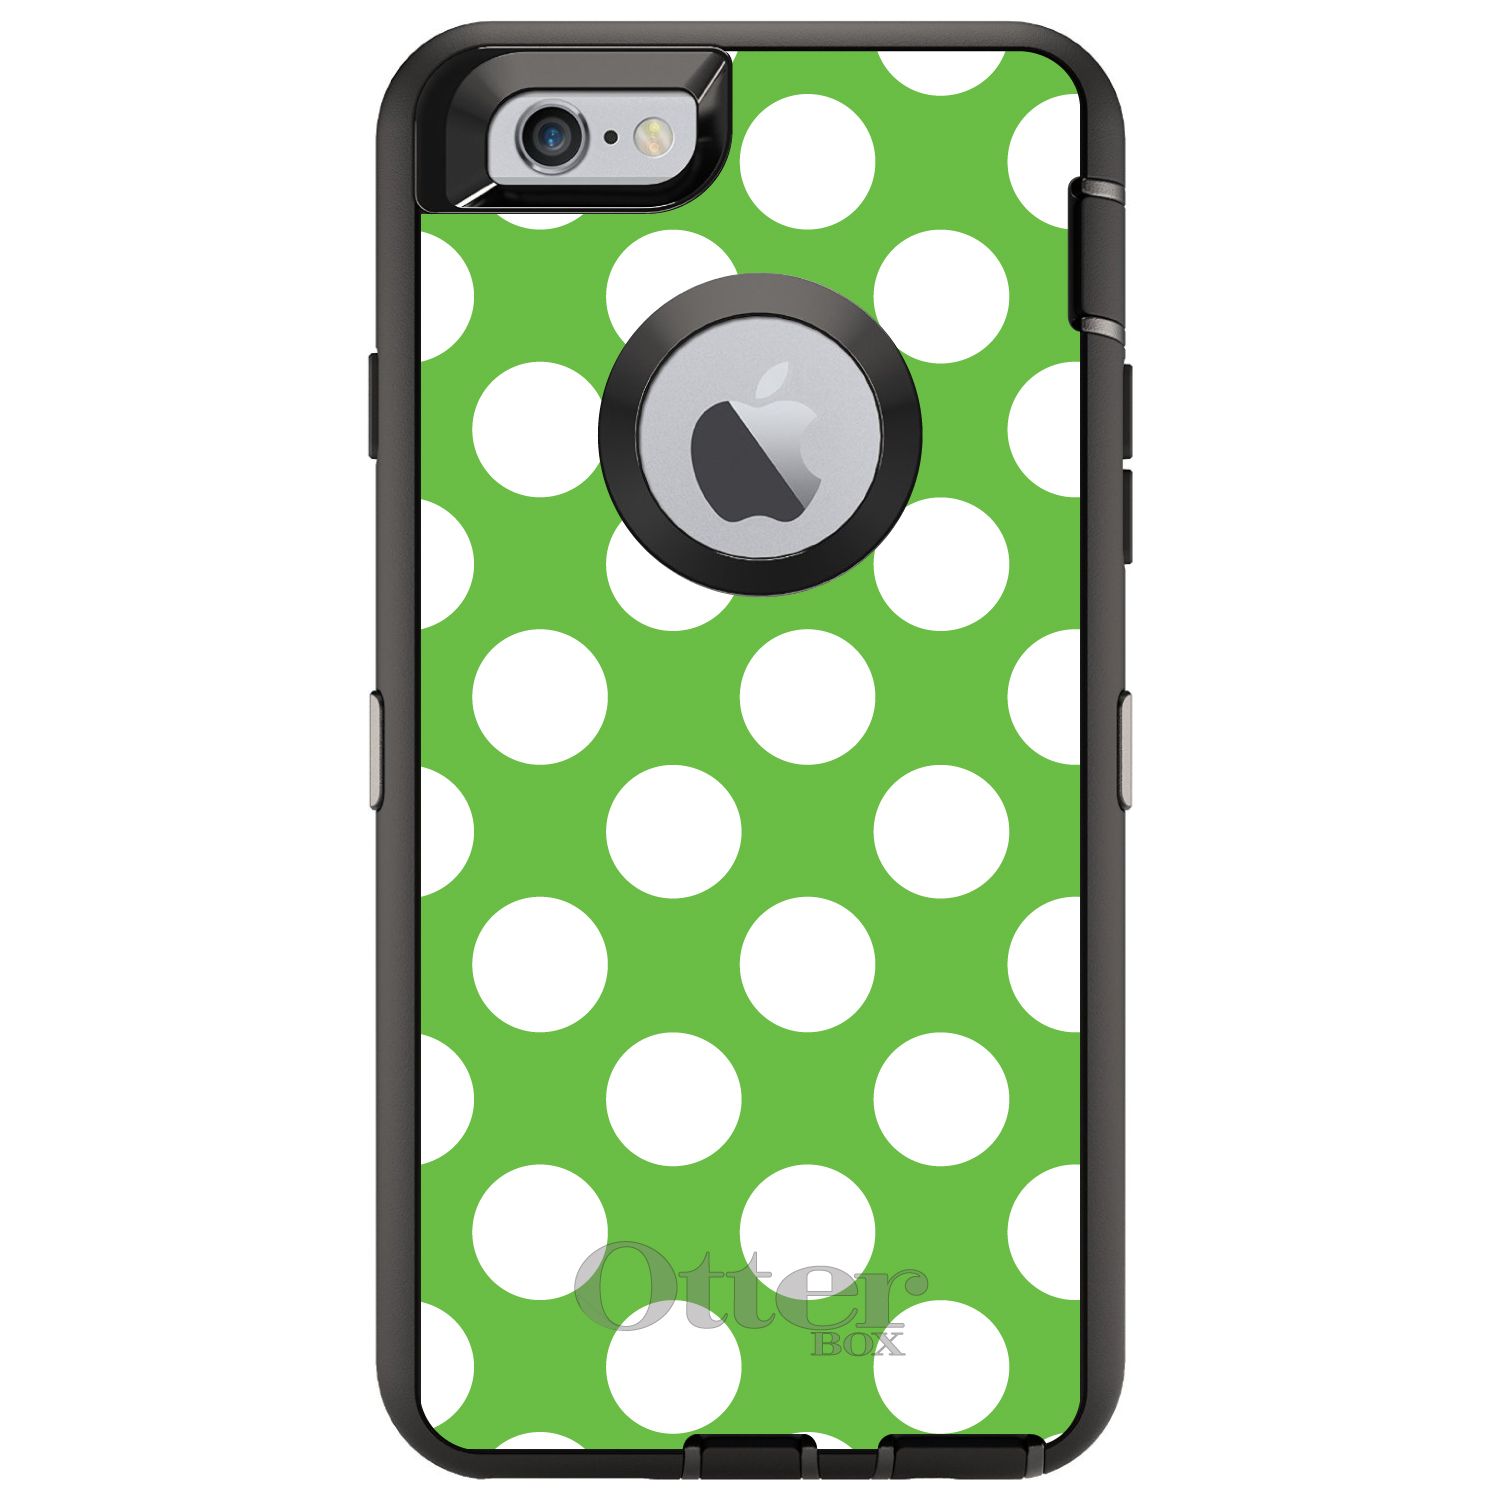 "DistinctInk™ Custom Black OtterBox Defender Series Case for Apple iPhone 6 / 6S (4.7"" Screen) - White & Green Polka Dots"